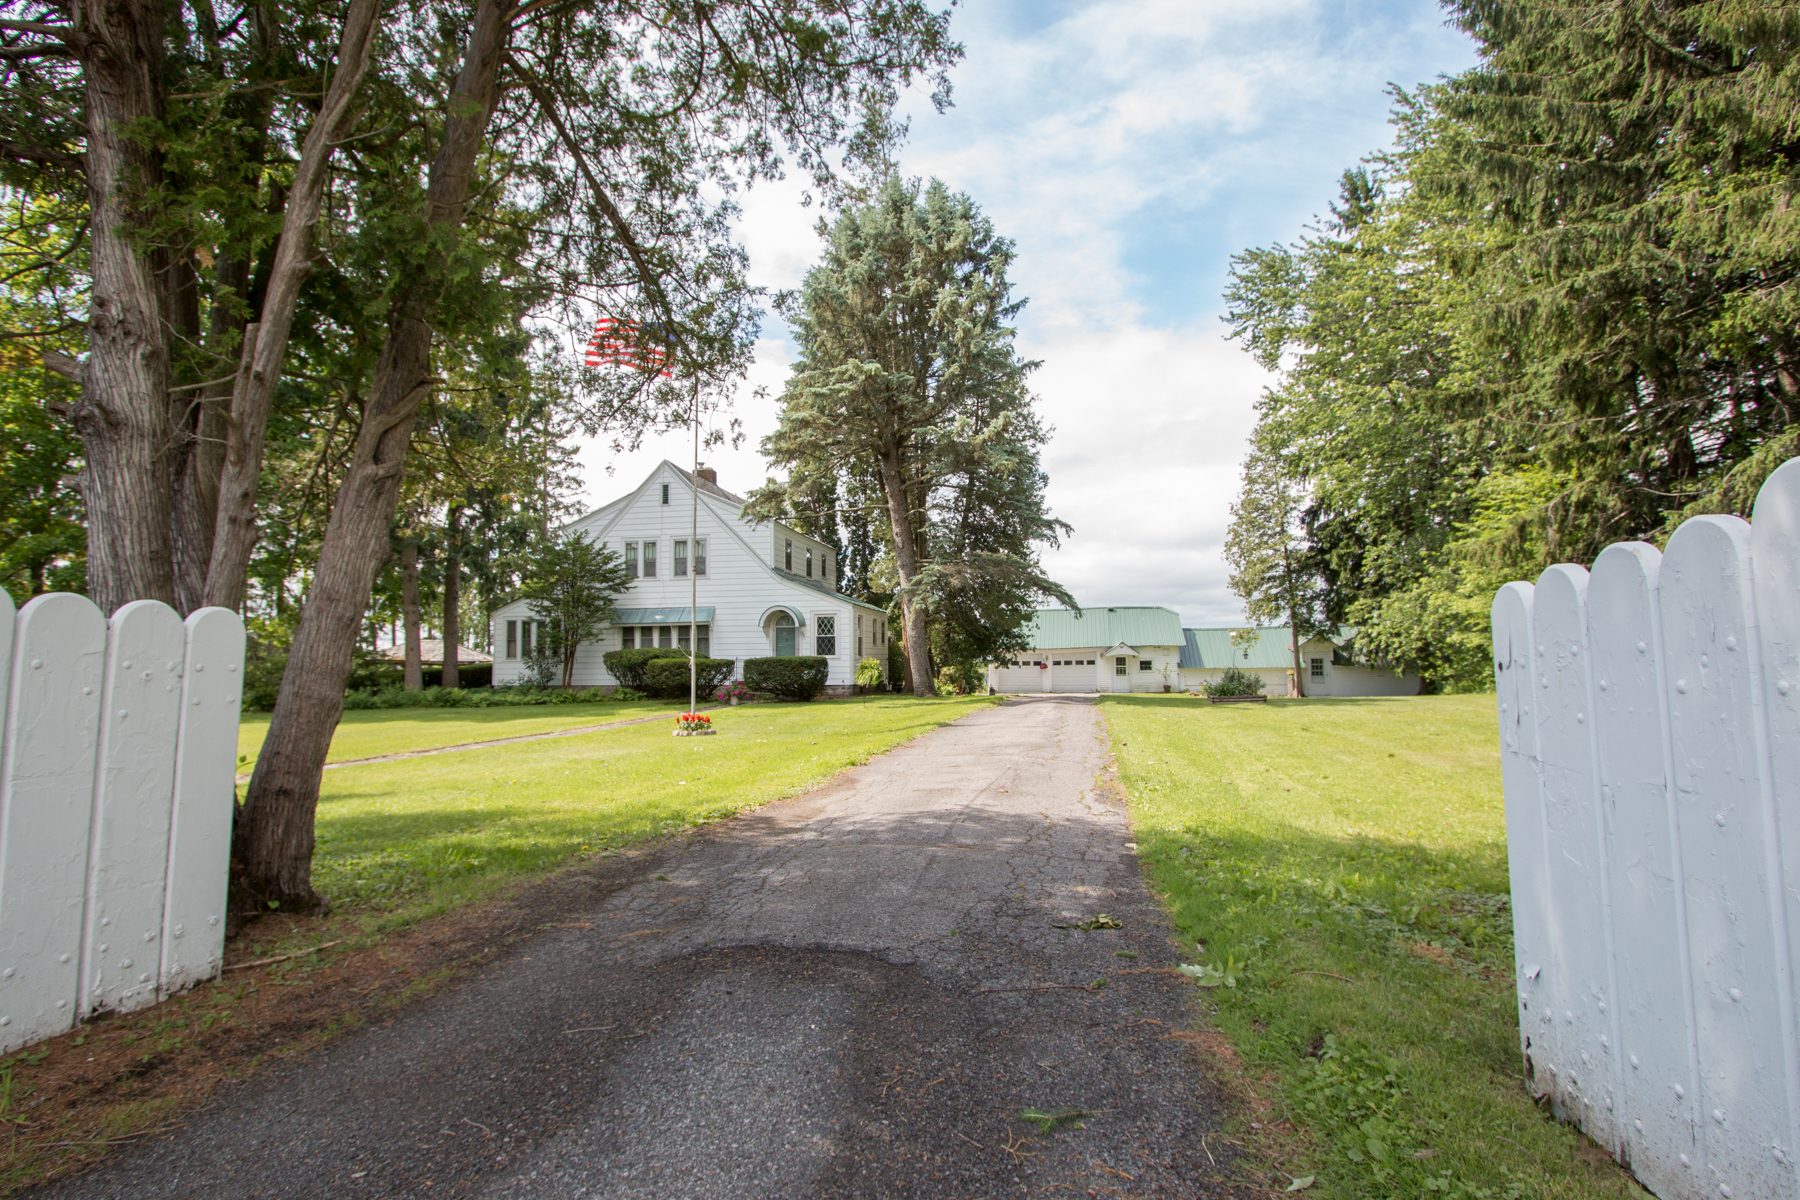 Single Family Home for Sale at Scenic Sprawling Country Estate with Views 2820 State Highway 67 Johnstown, New York 12095 United States